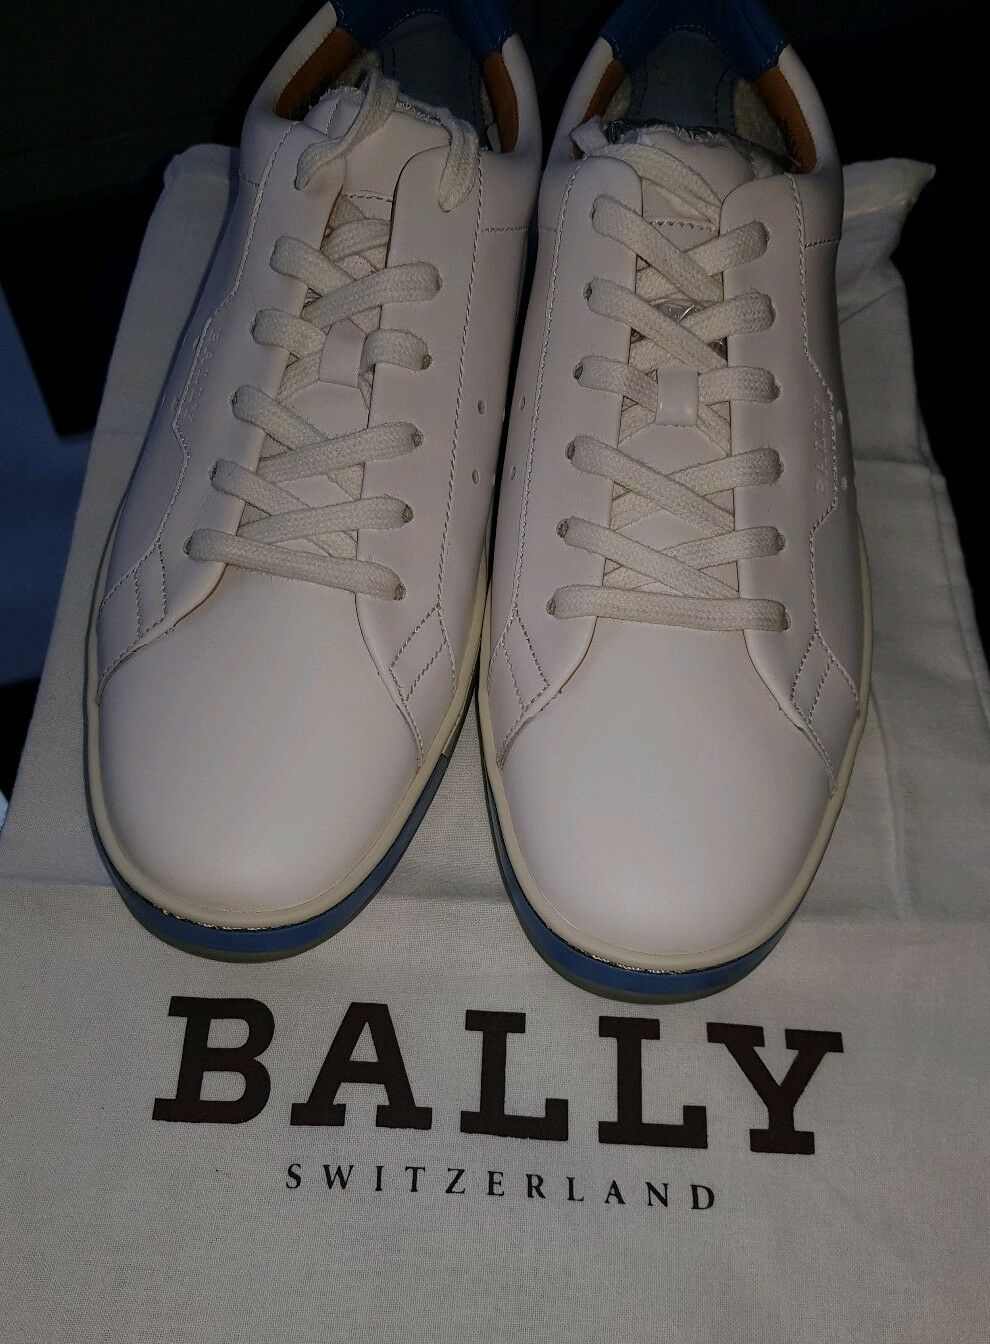 Authentic & genuine brand new in box Bally Sneakers size 39.5 RRP-$695